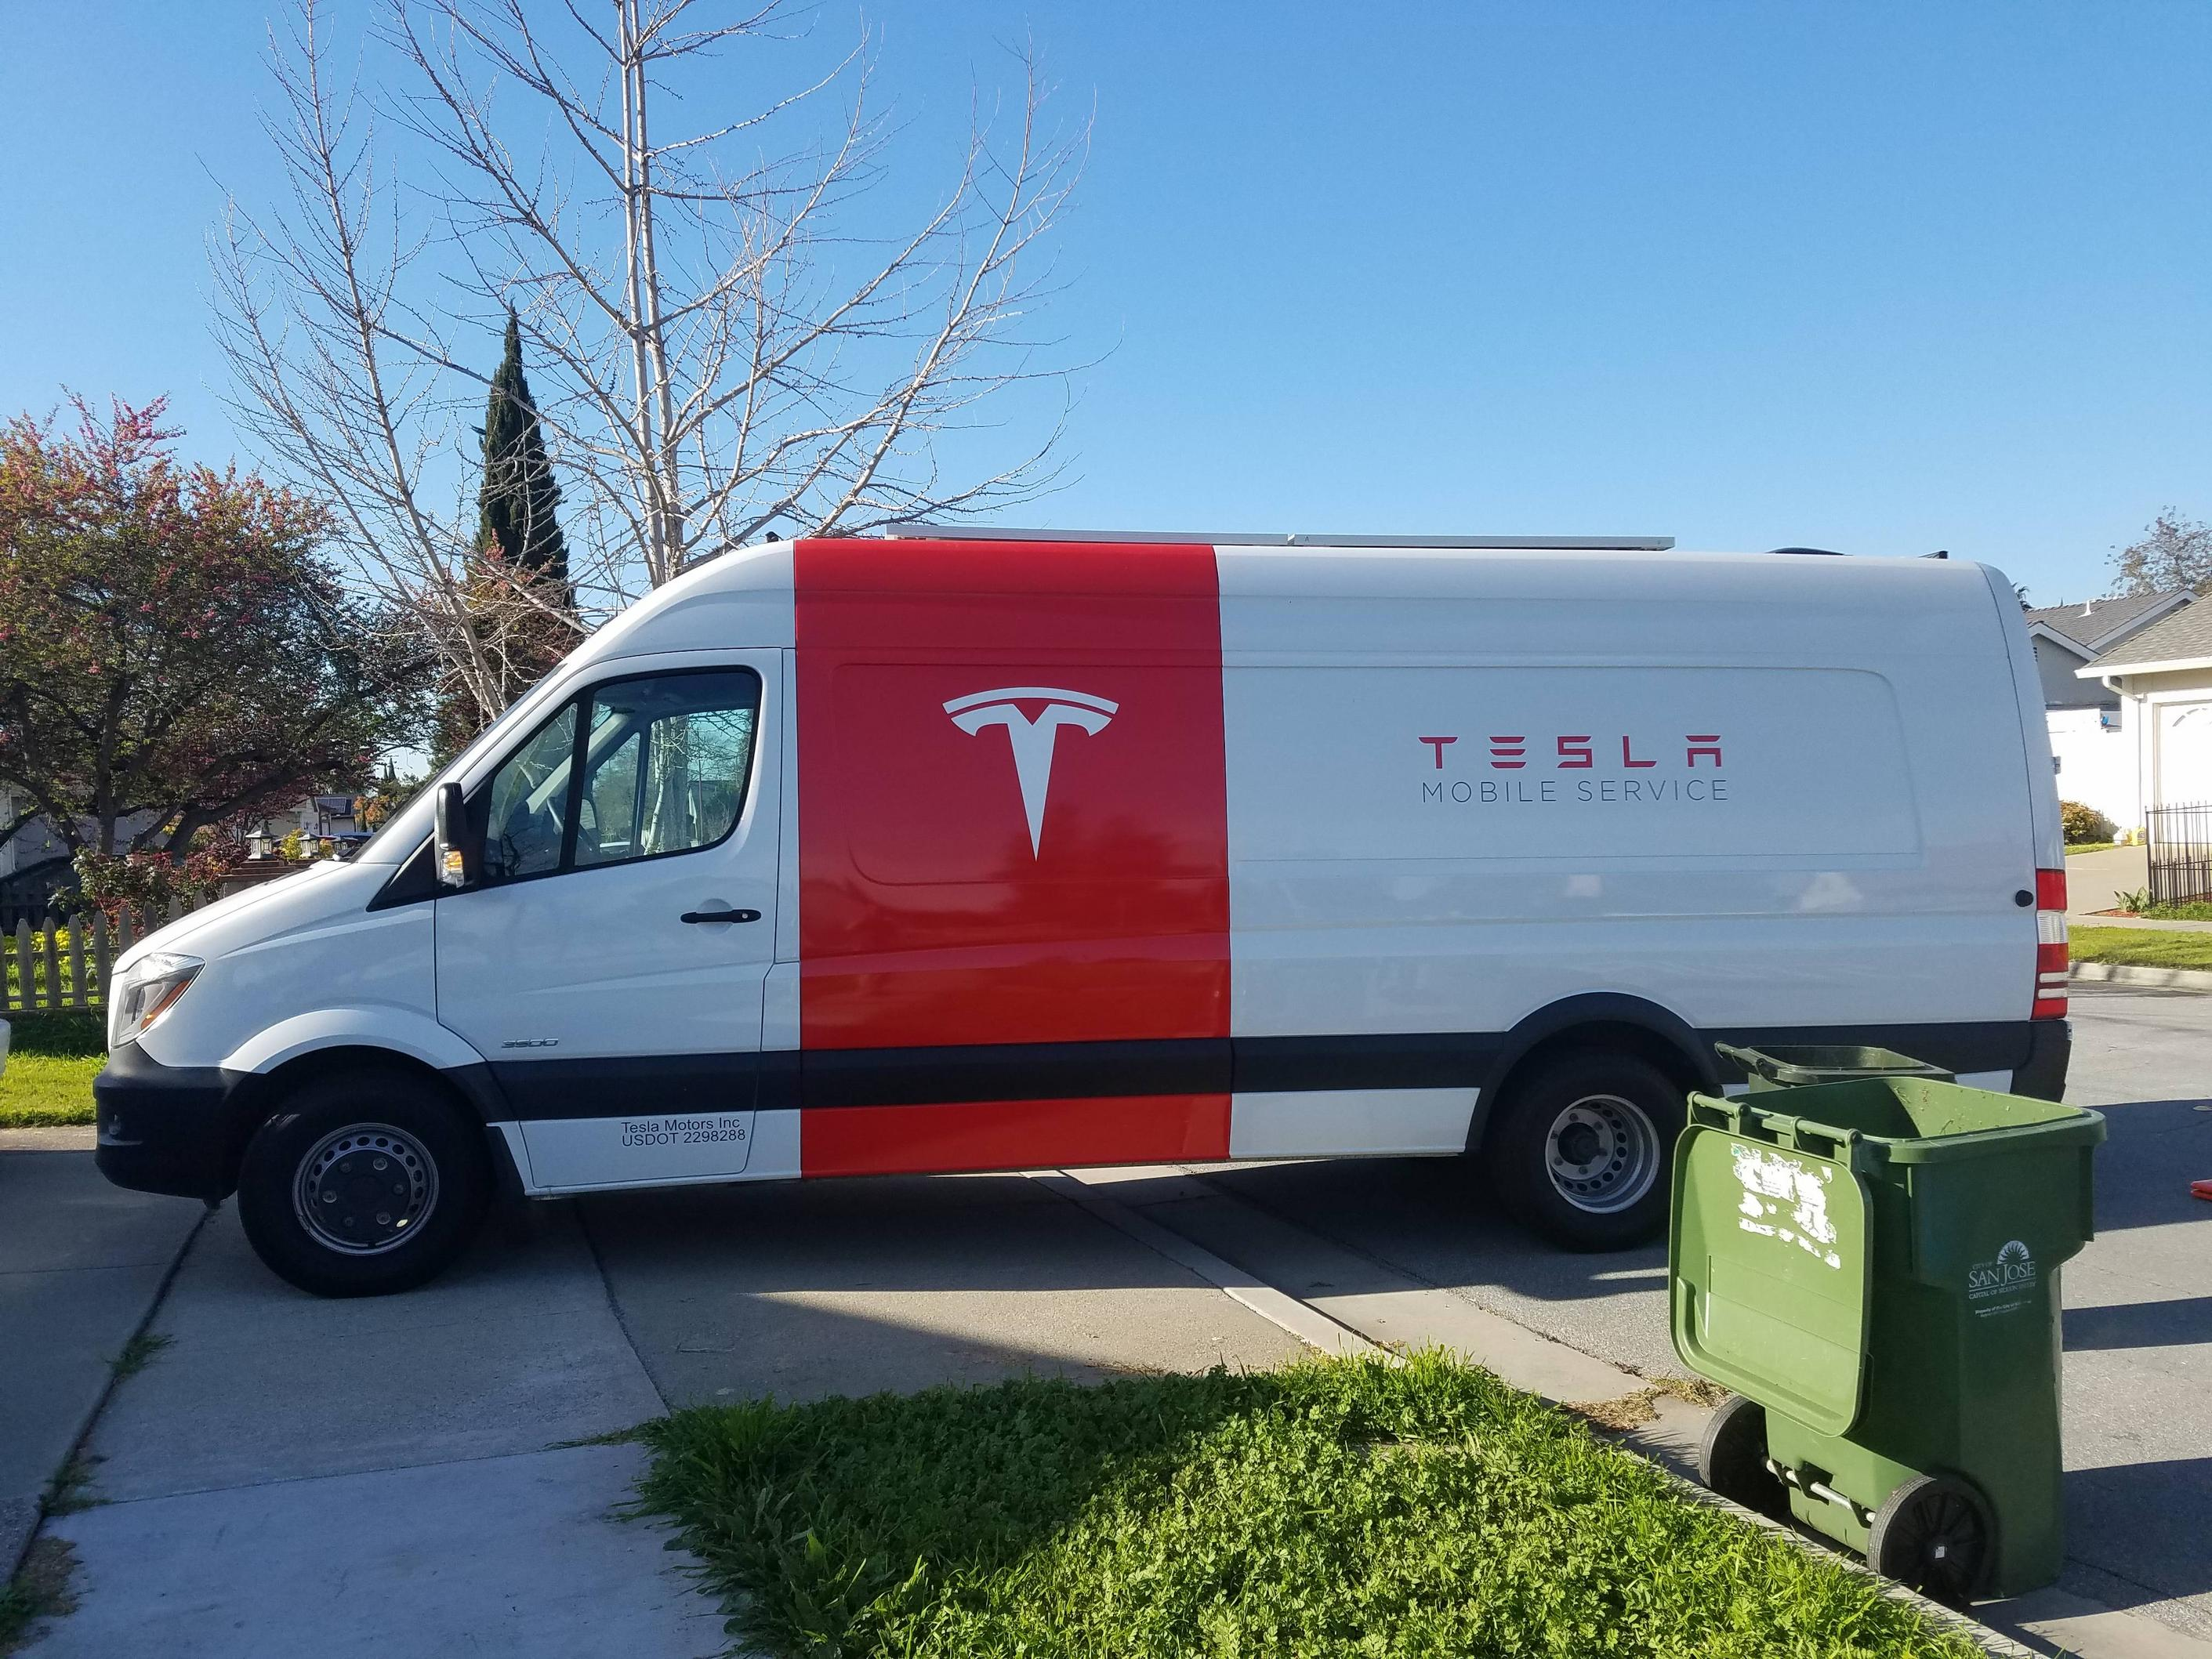 Tesla-mobile-service-van-tire-repair